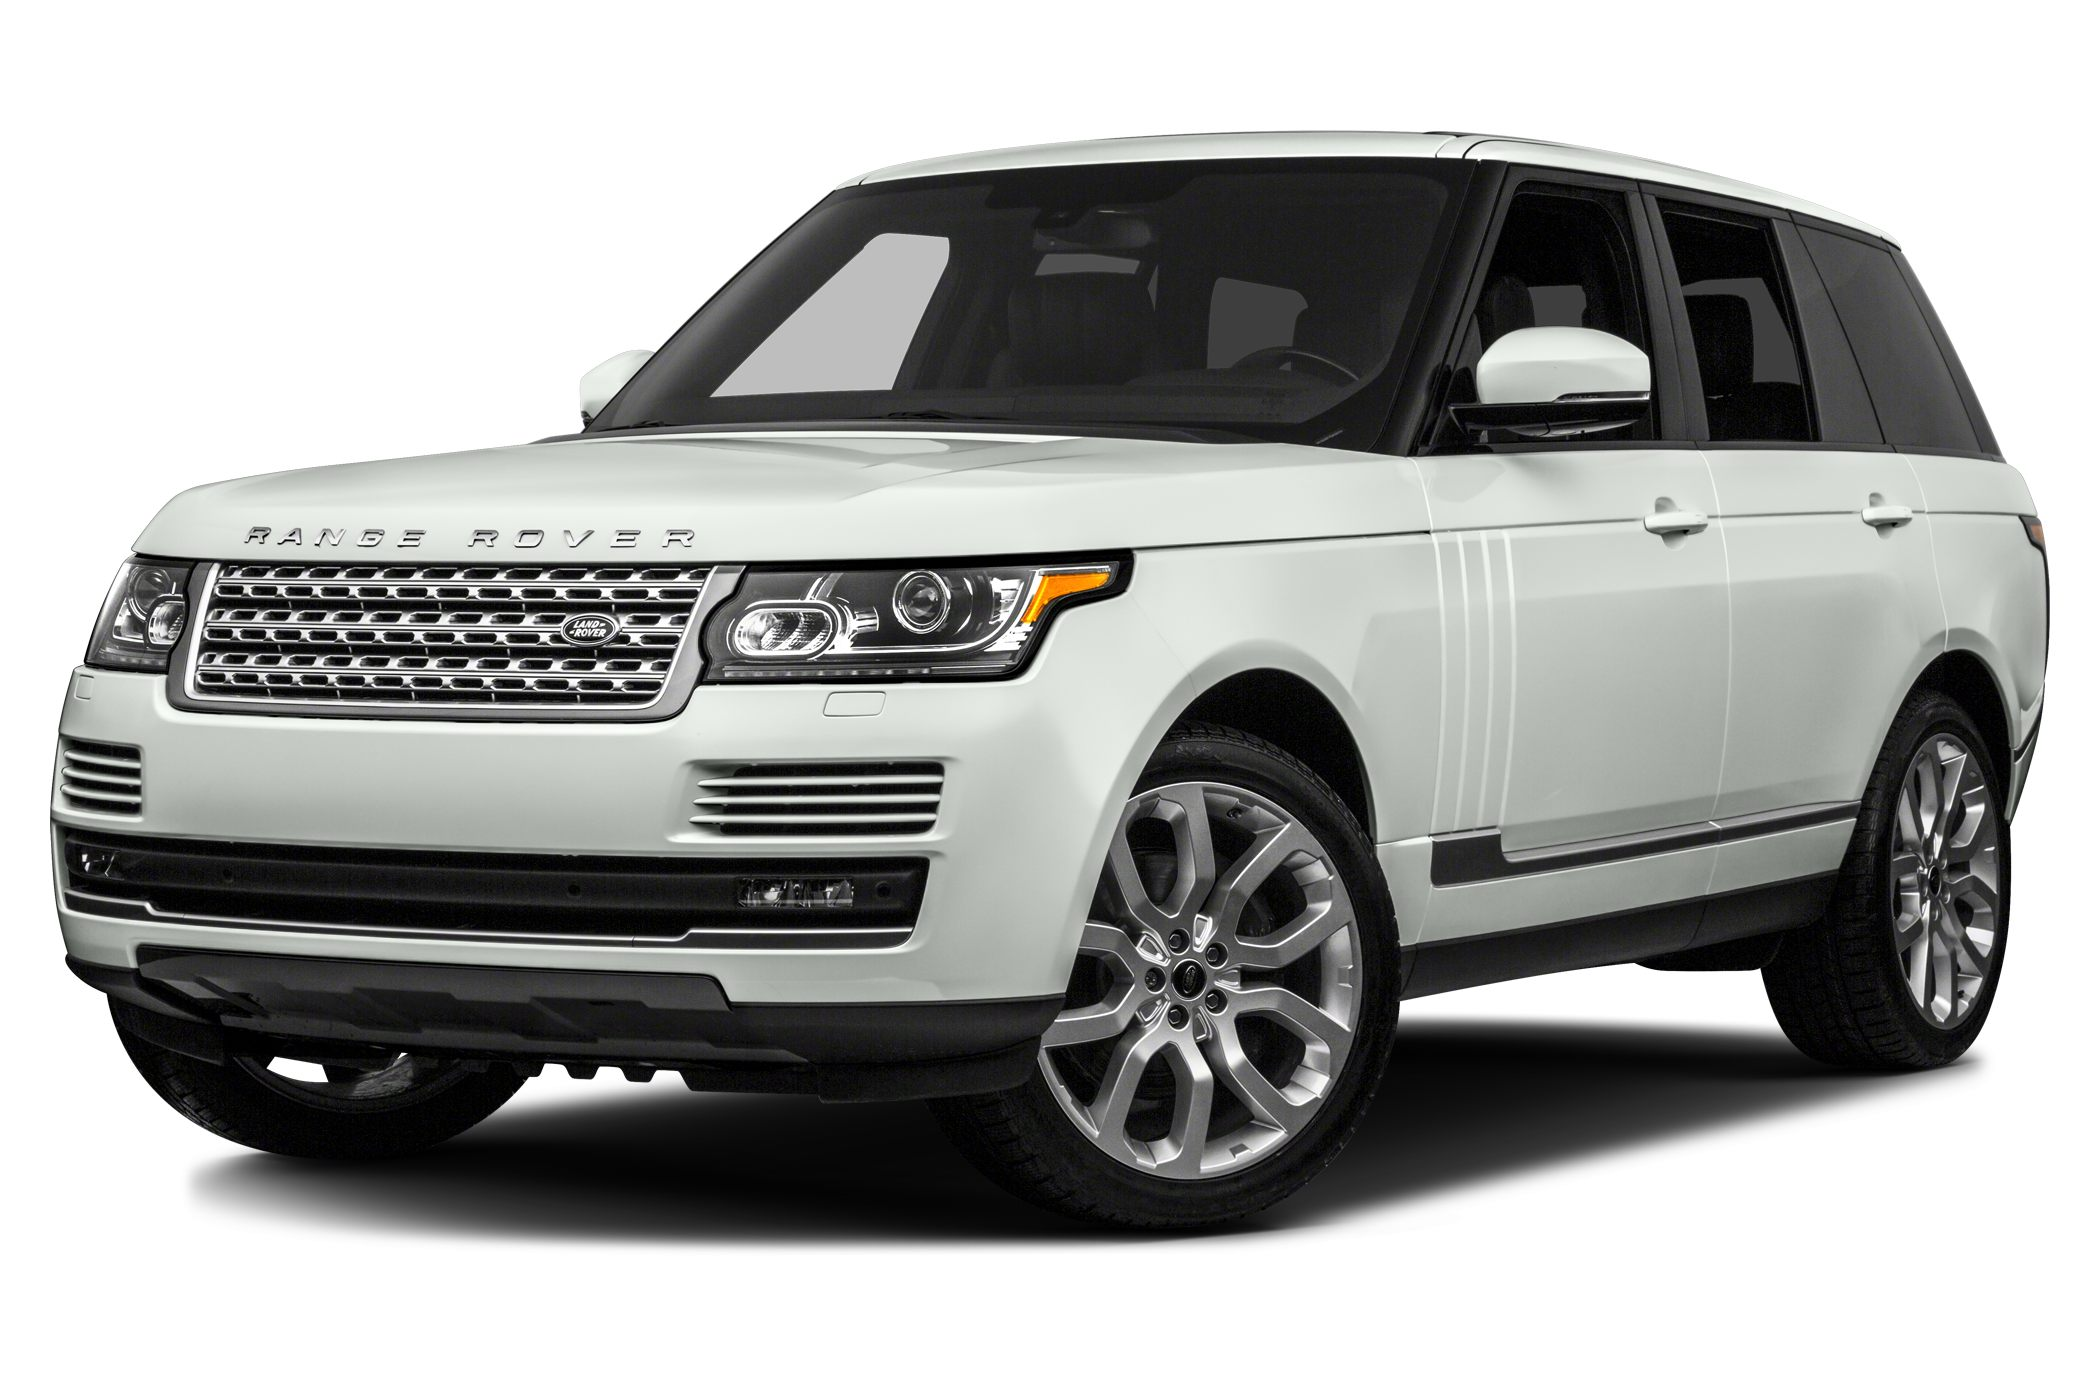 2015 Land Rover Range Rover 5.0L Supercharged SUV for sale in Dallas for $120,420 with 8 miles.